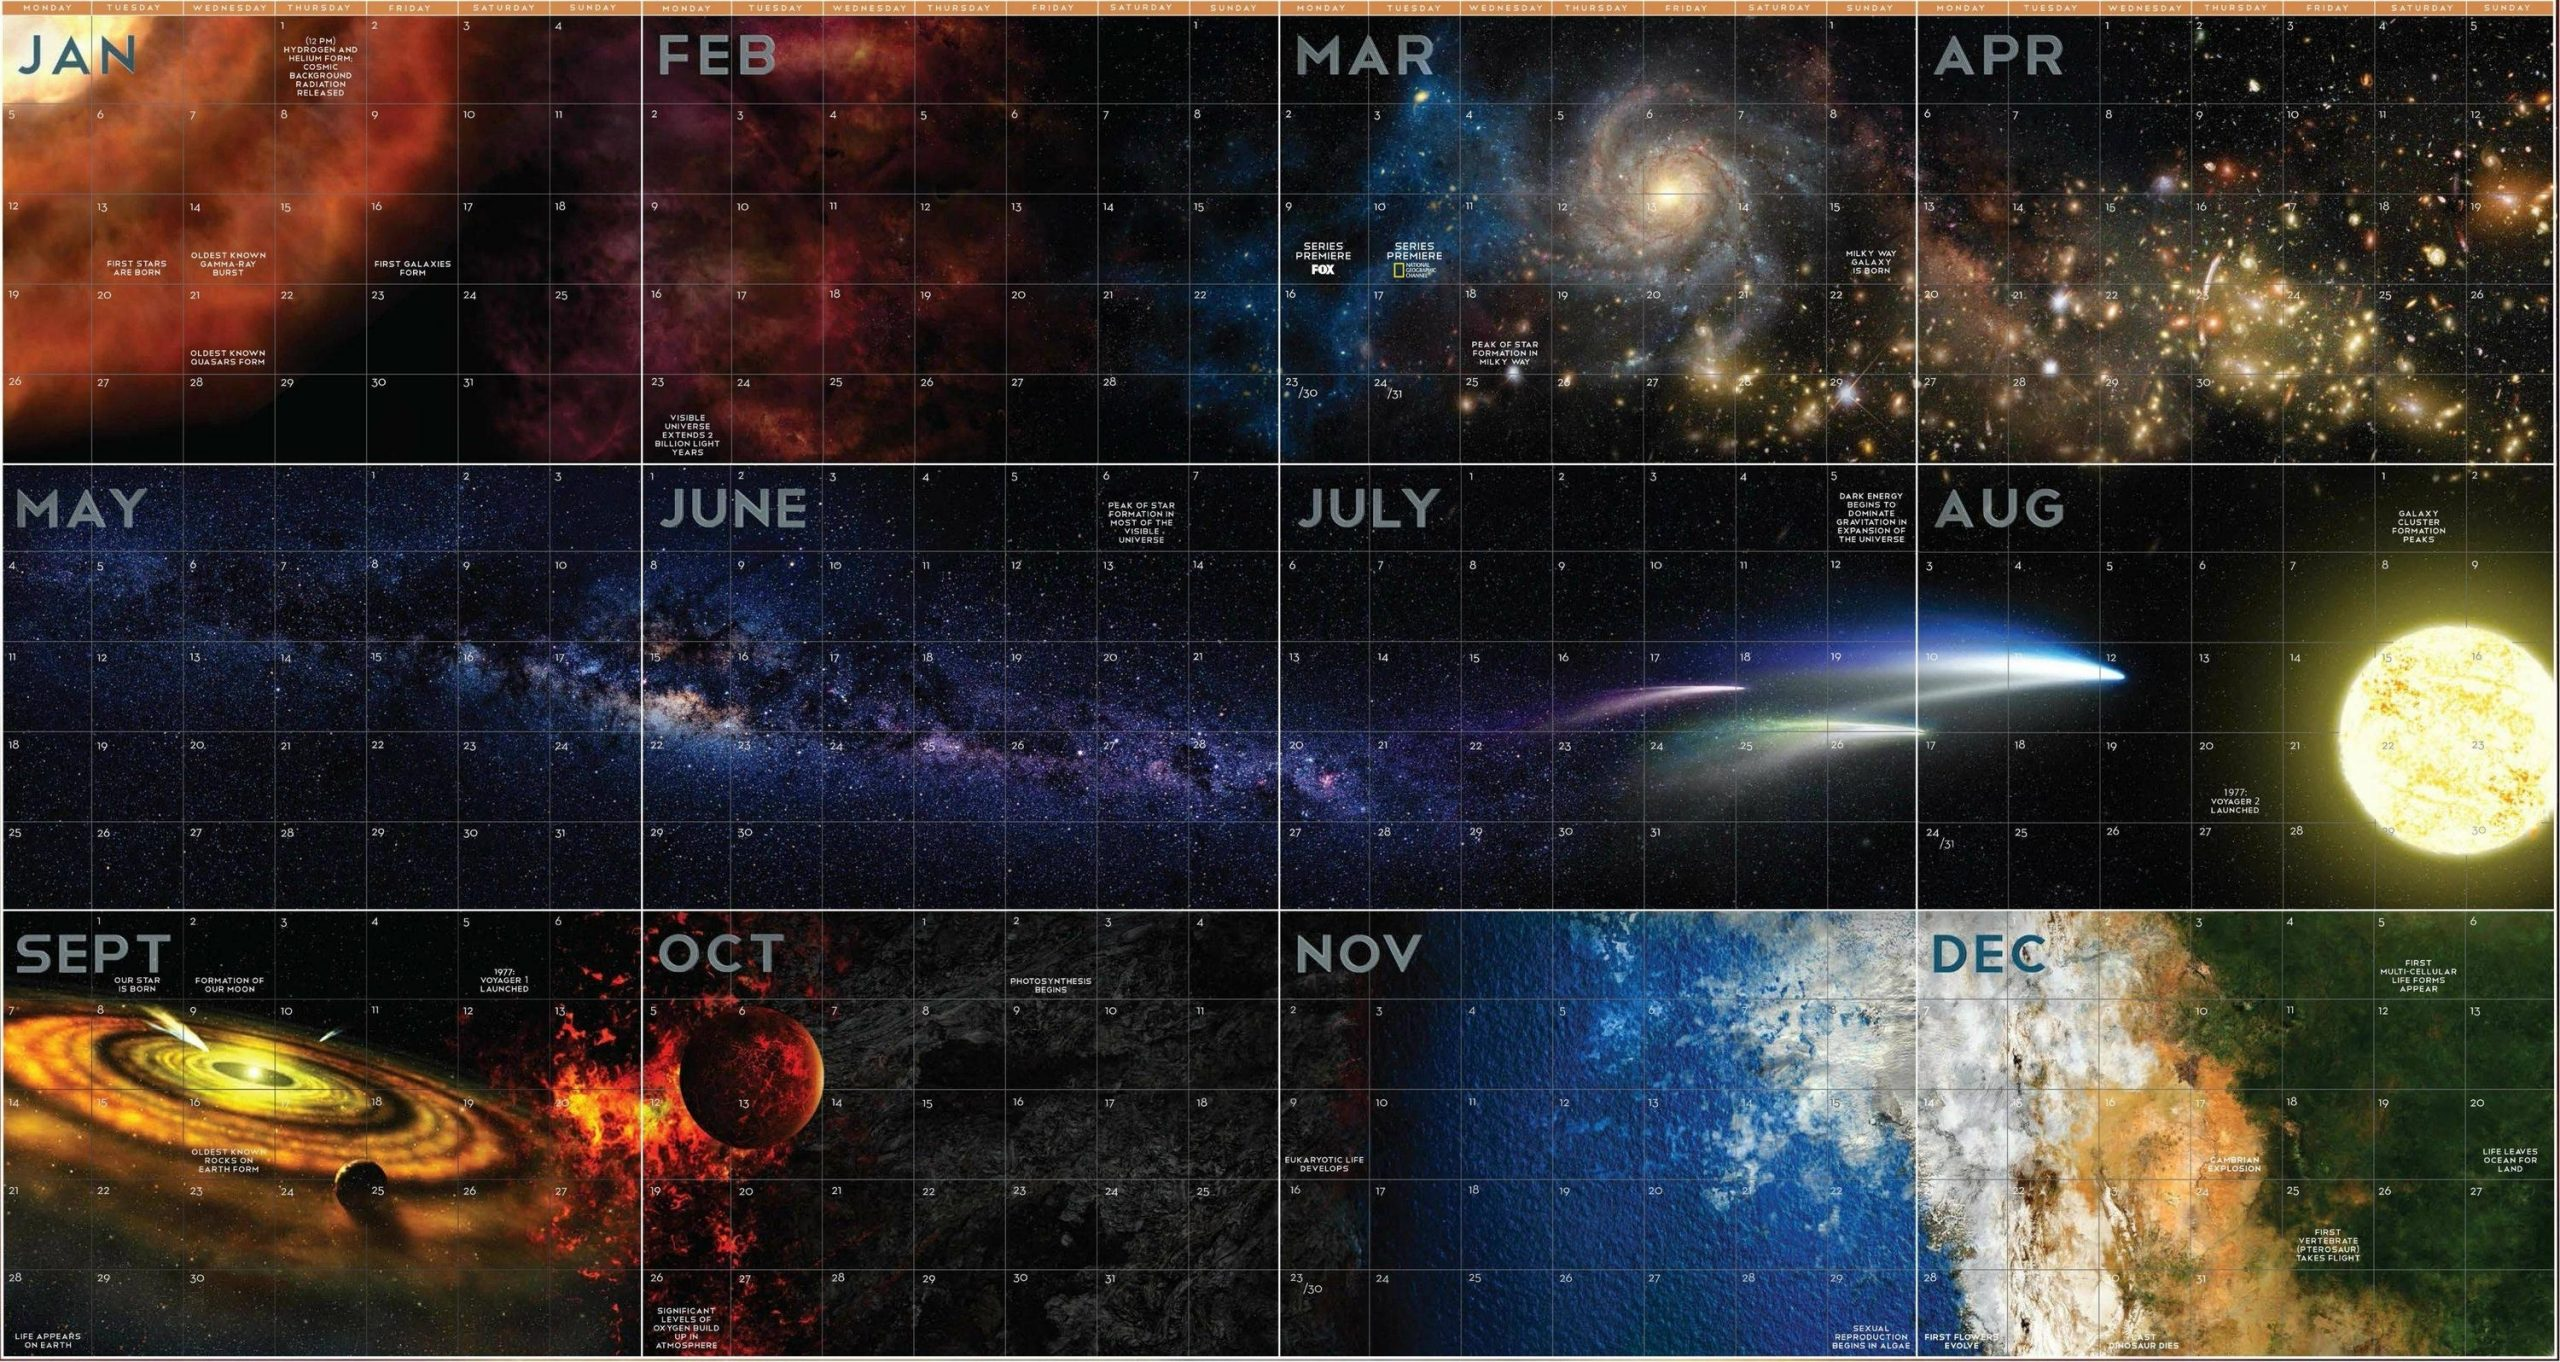 Space Calendar 2017: It'S Gonna Be Exciting - Out Of The Box